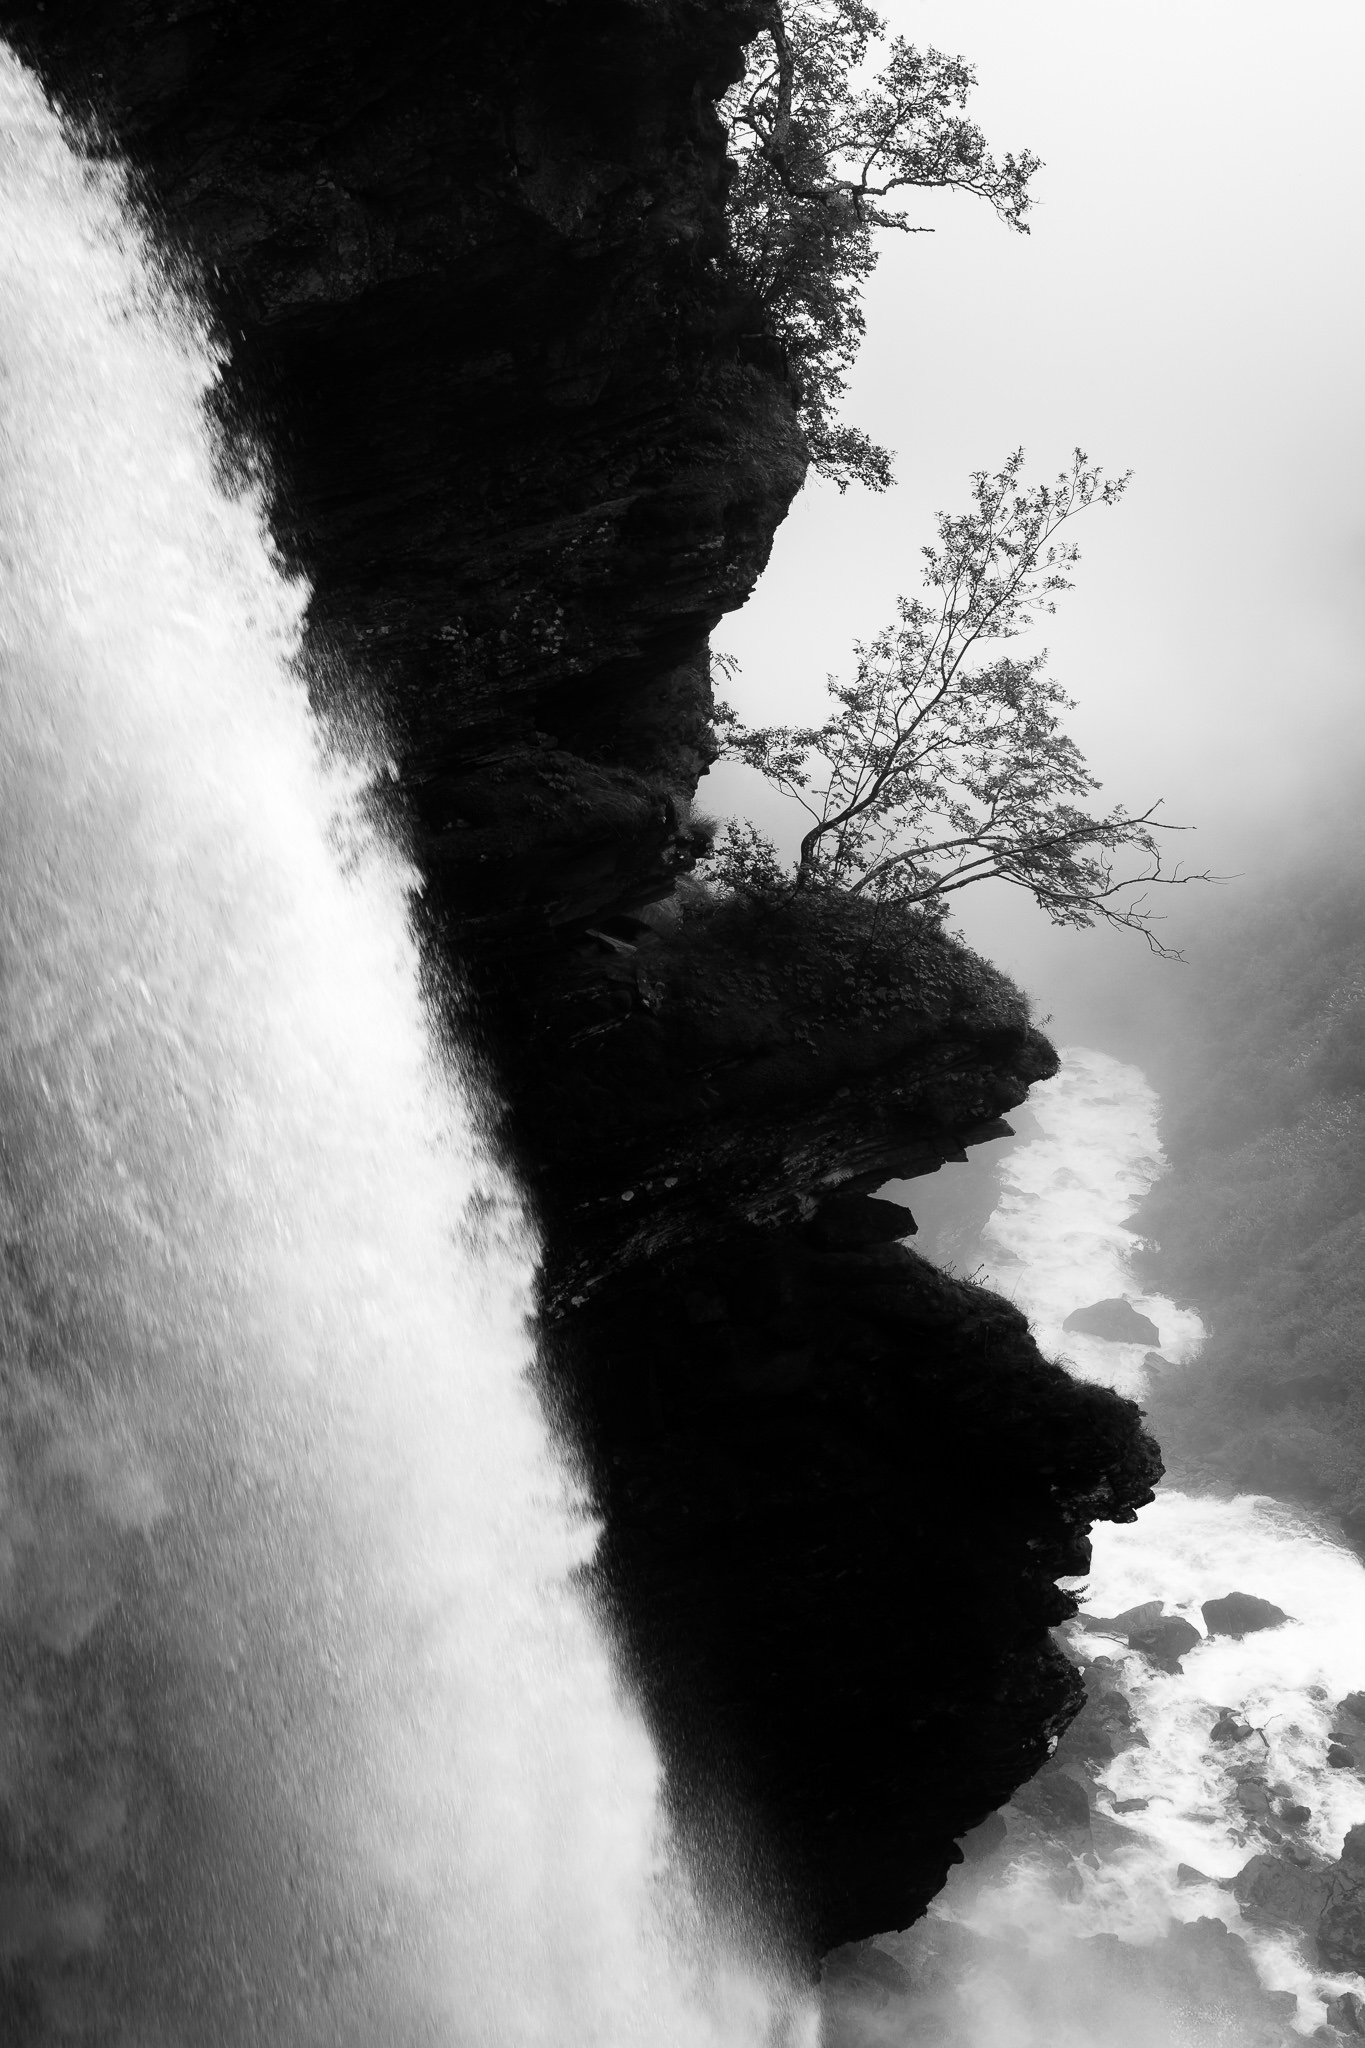 Black and white than color waterfall landscape photo waterfall landscape photo nikon d7000 24mm f 1 4 24mm iso 100 1 200 f 7 1